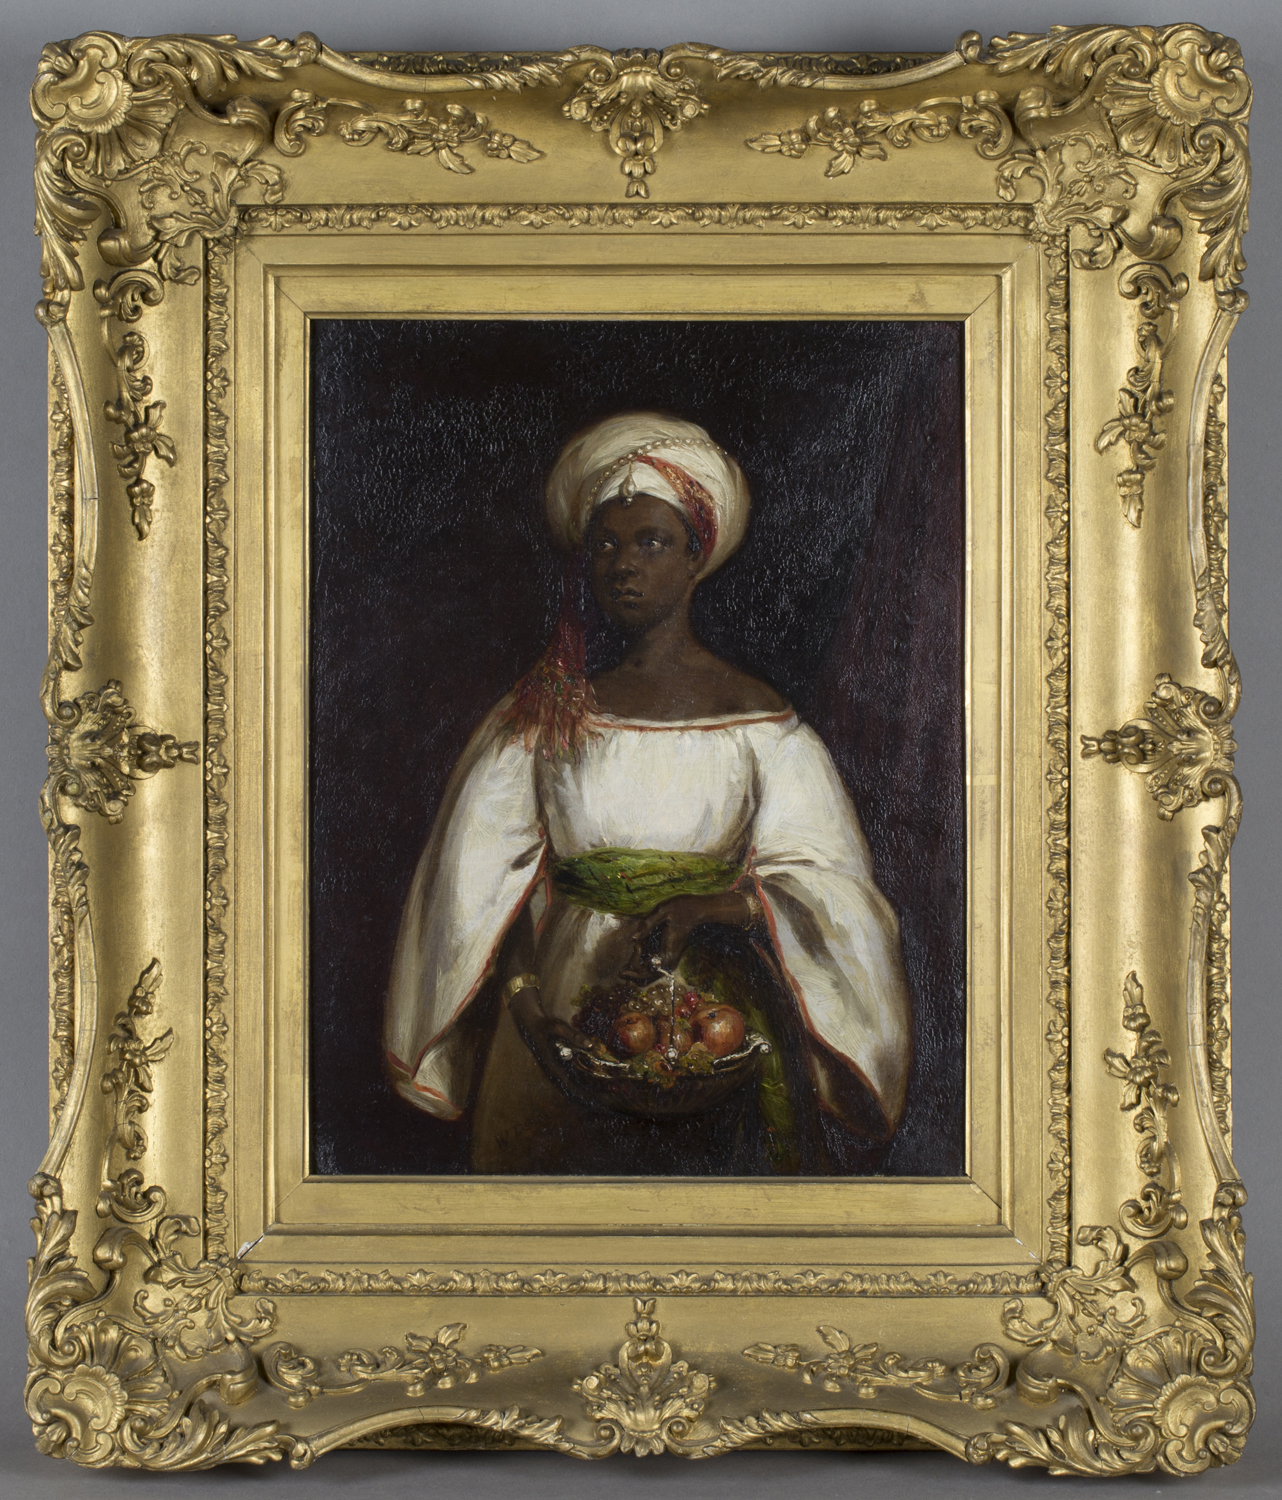 Lot 56 - William Derby - 'The Fruit Bearer', oil on panel, signed and dated 1844 recto, titled gallery